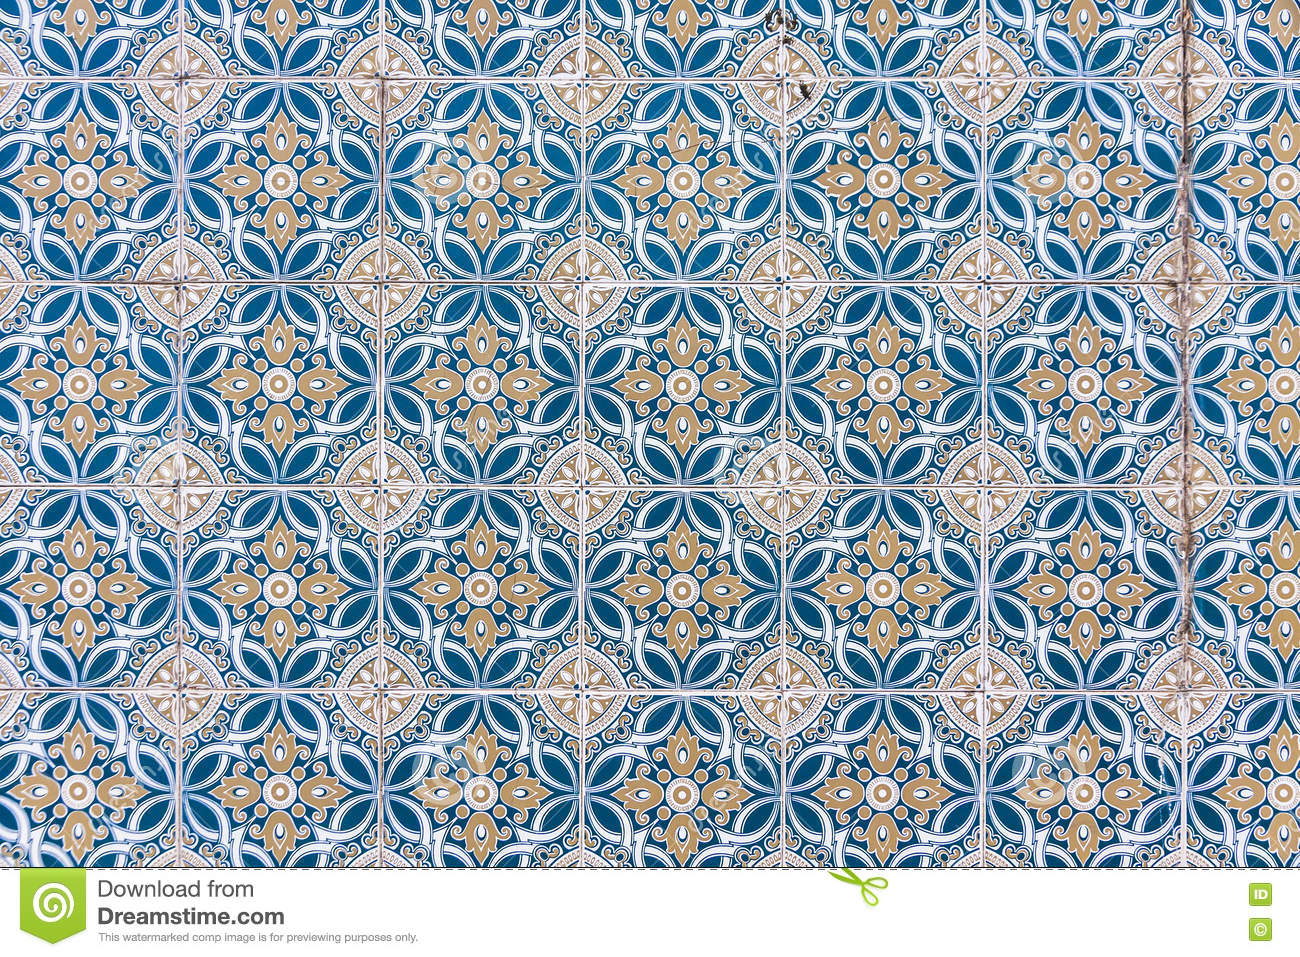 Typical Portuguese Old Ceramic Wall Tiles (Azulejos) Stock Image ...